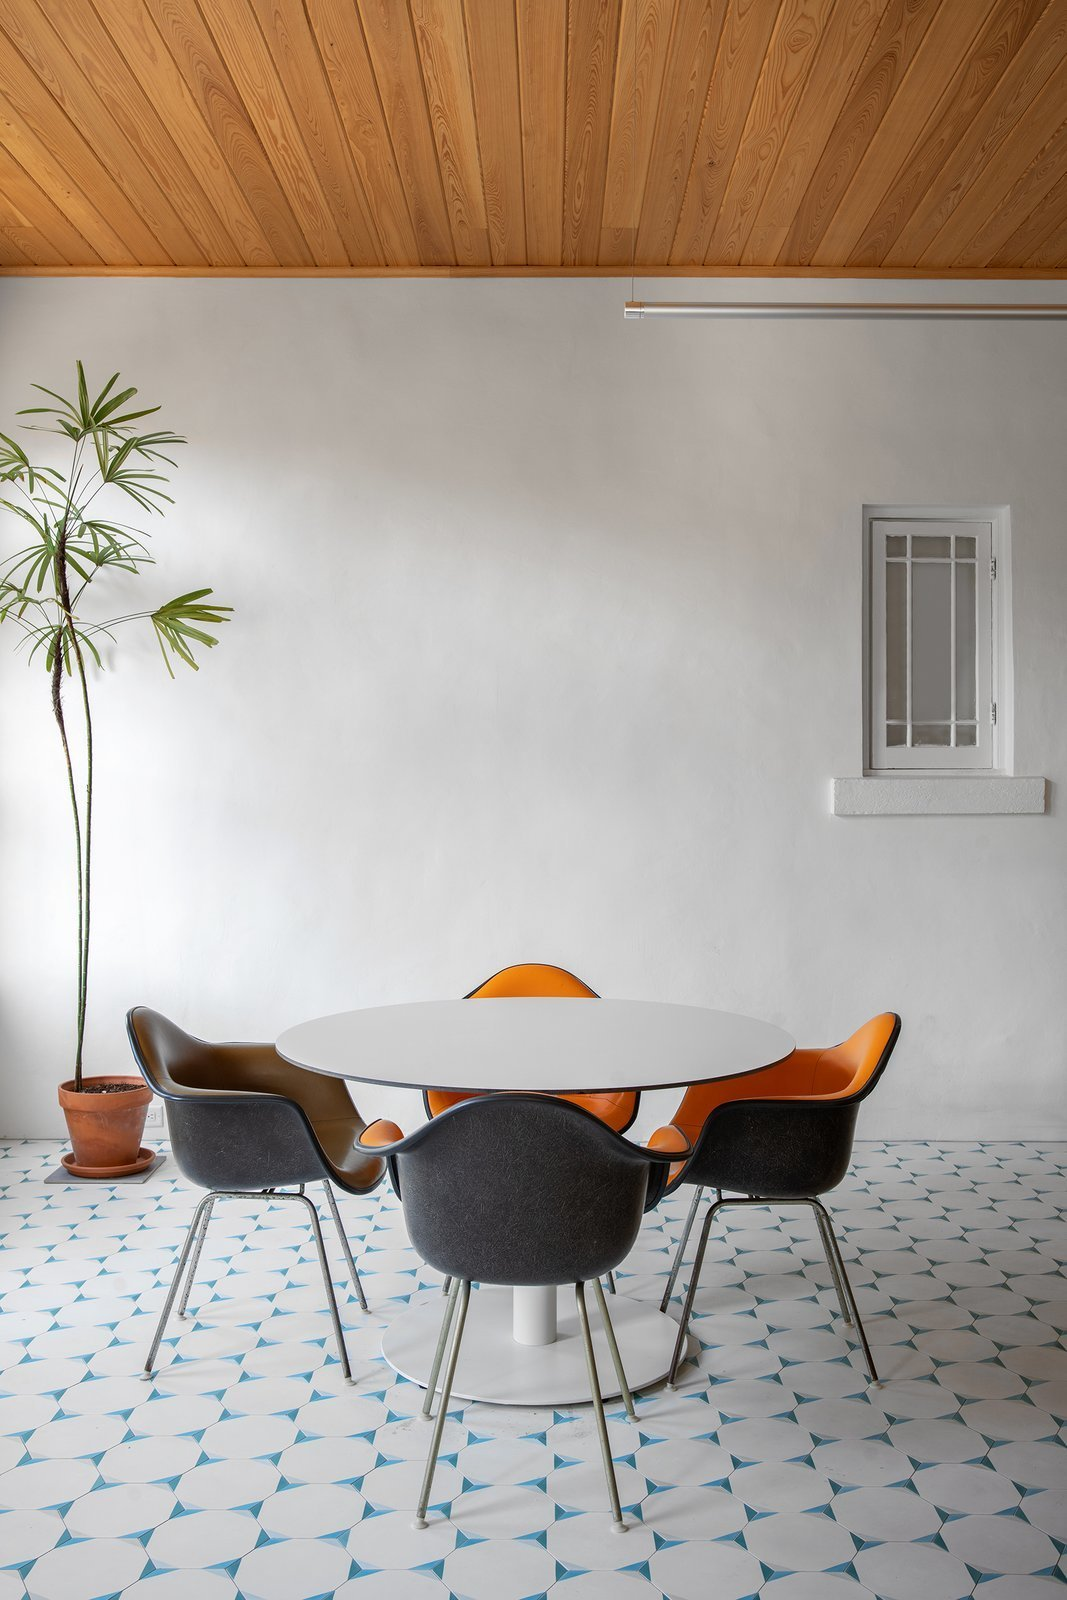 Dundee House dining area